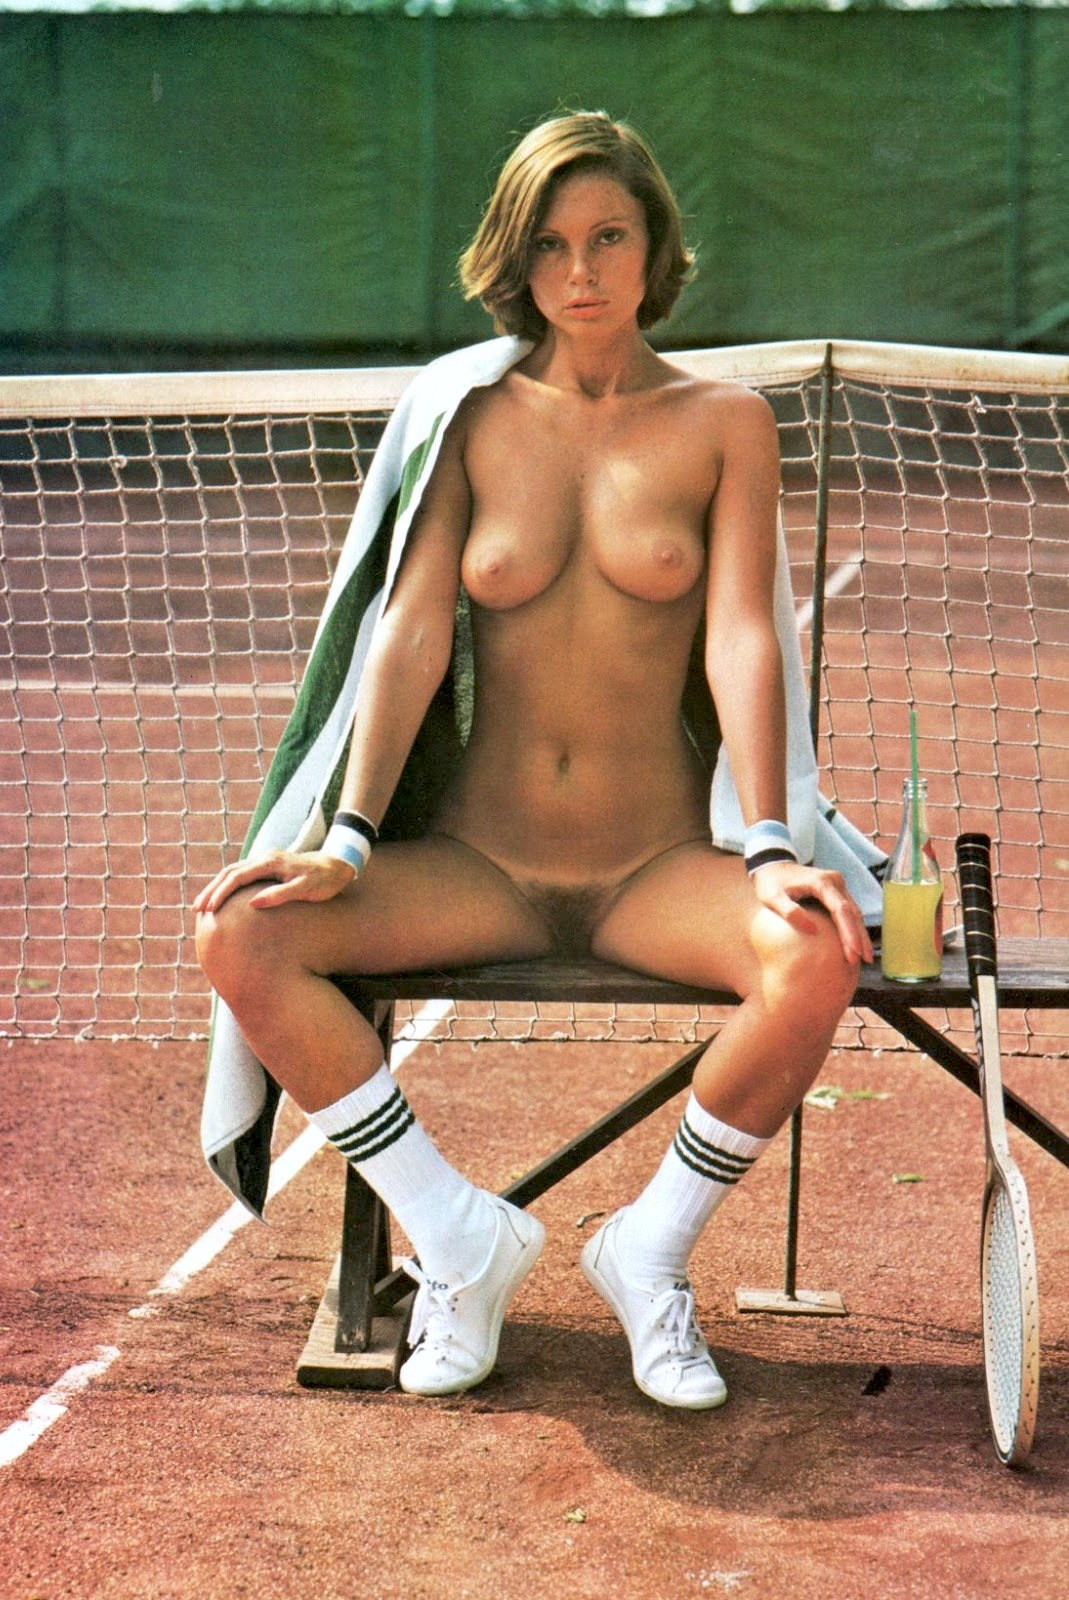 Nude tennis star females for council